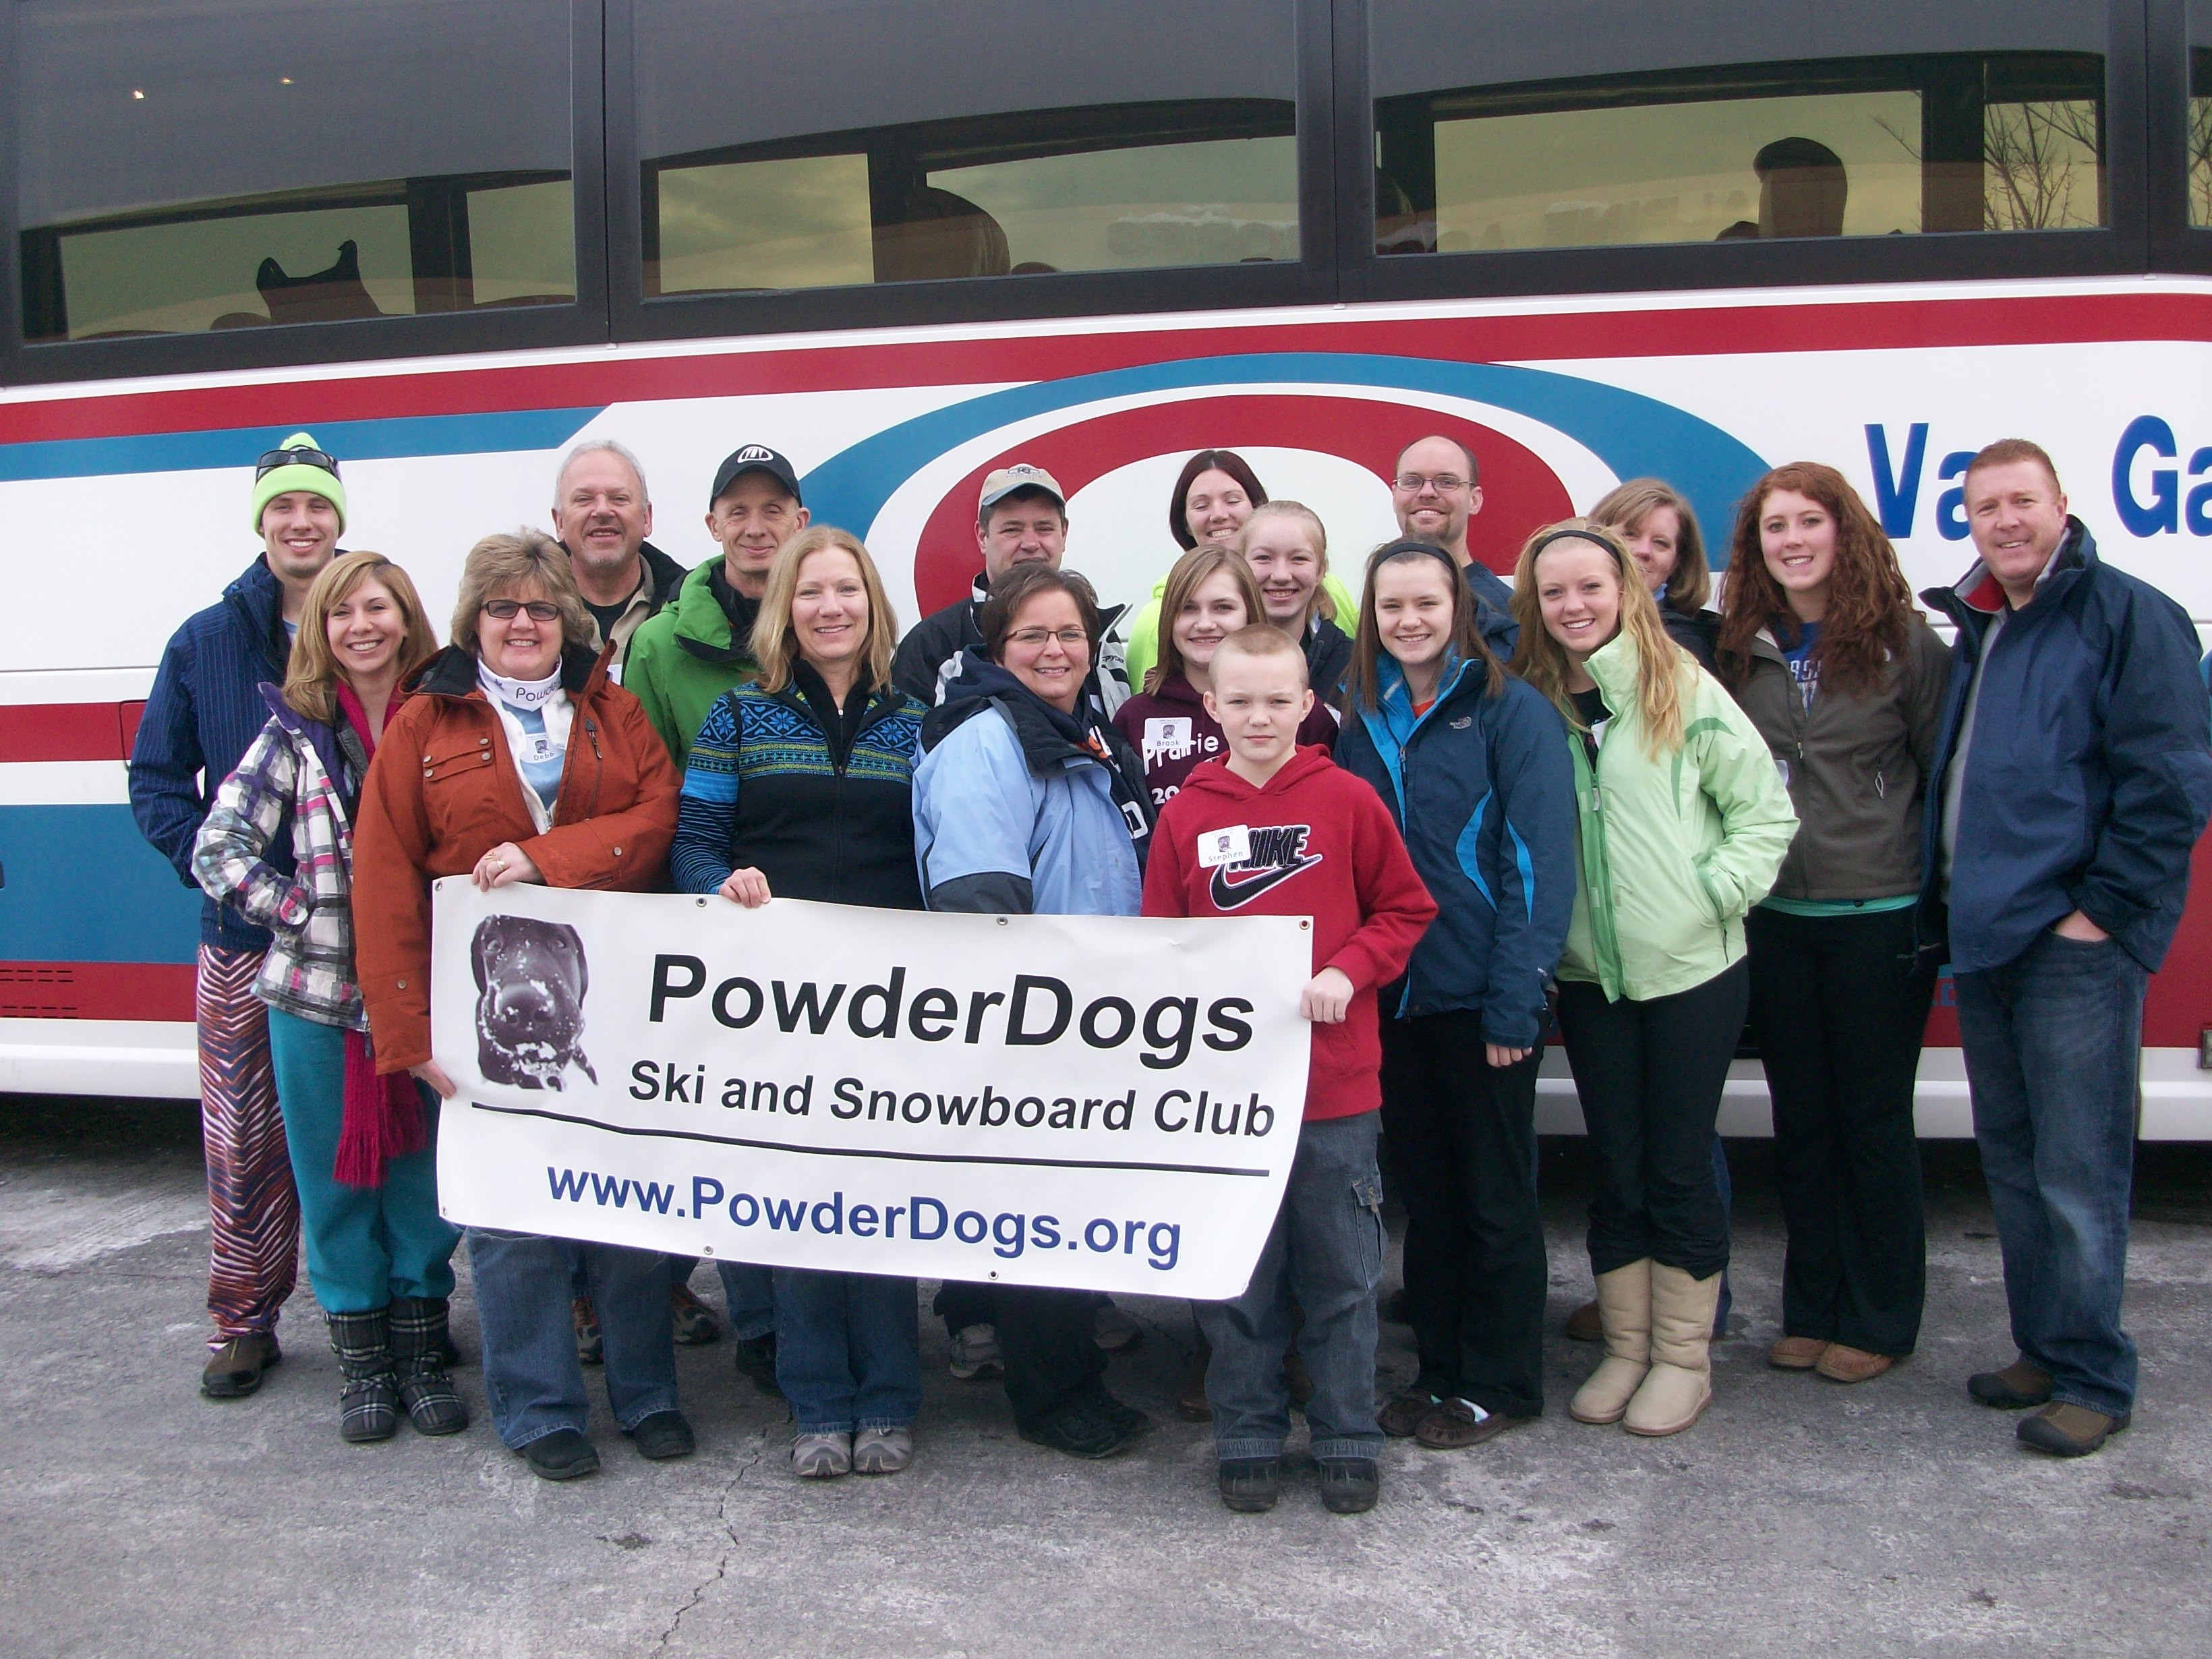 These Powder Dogs had a great skiing Granite Peak.